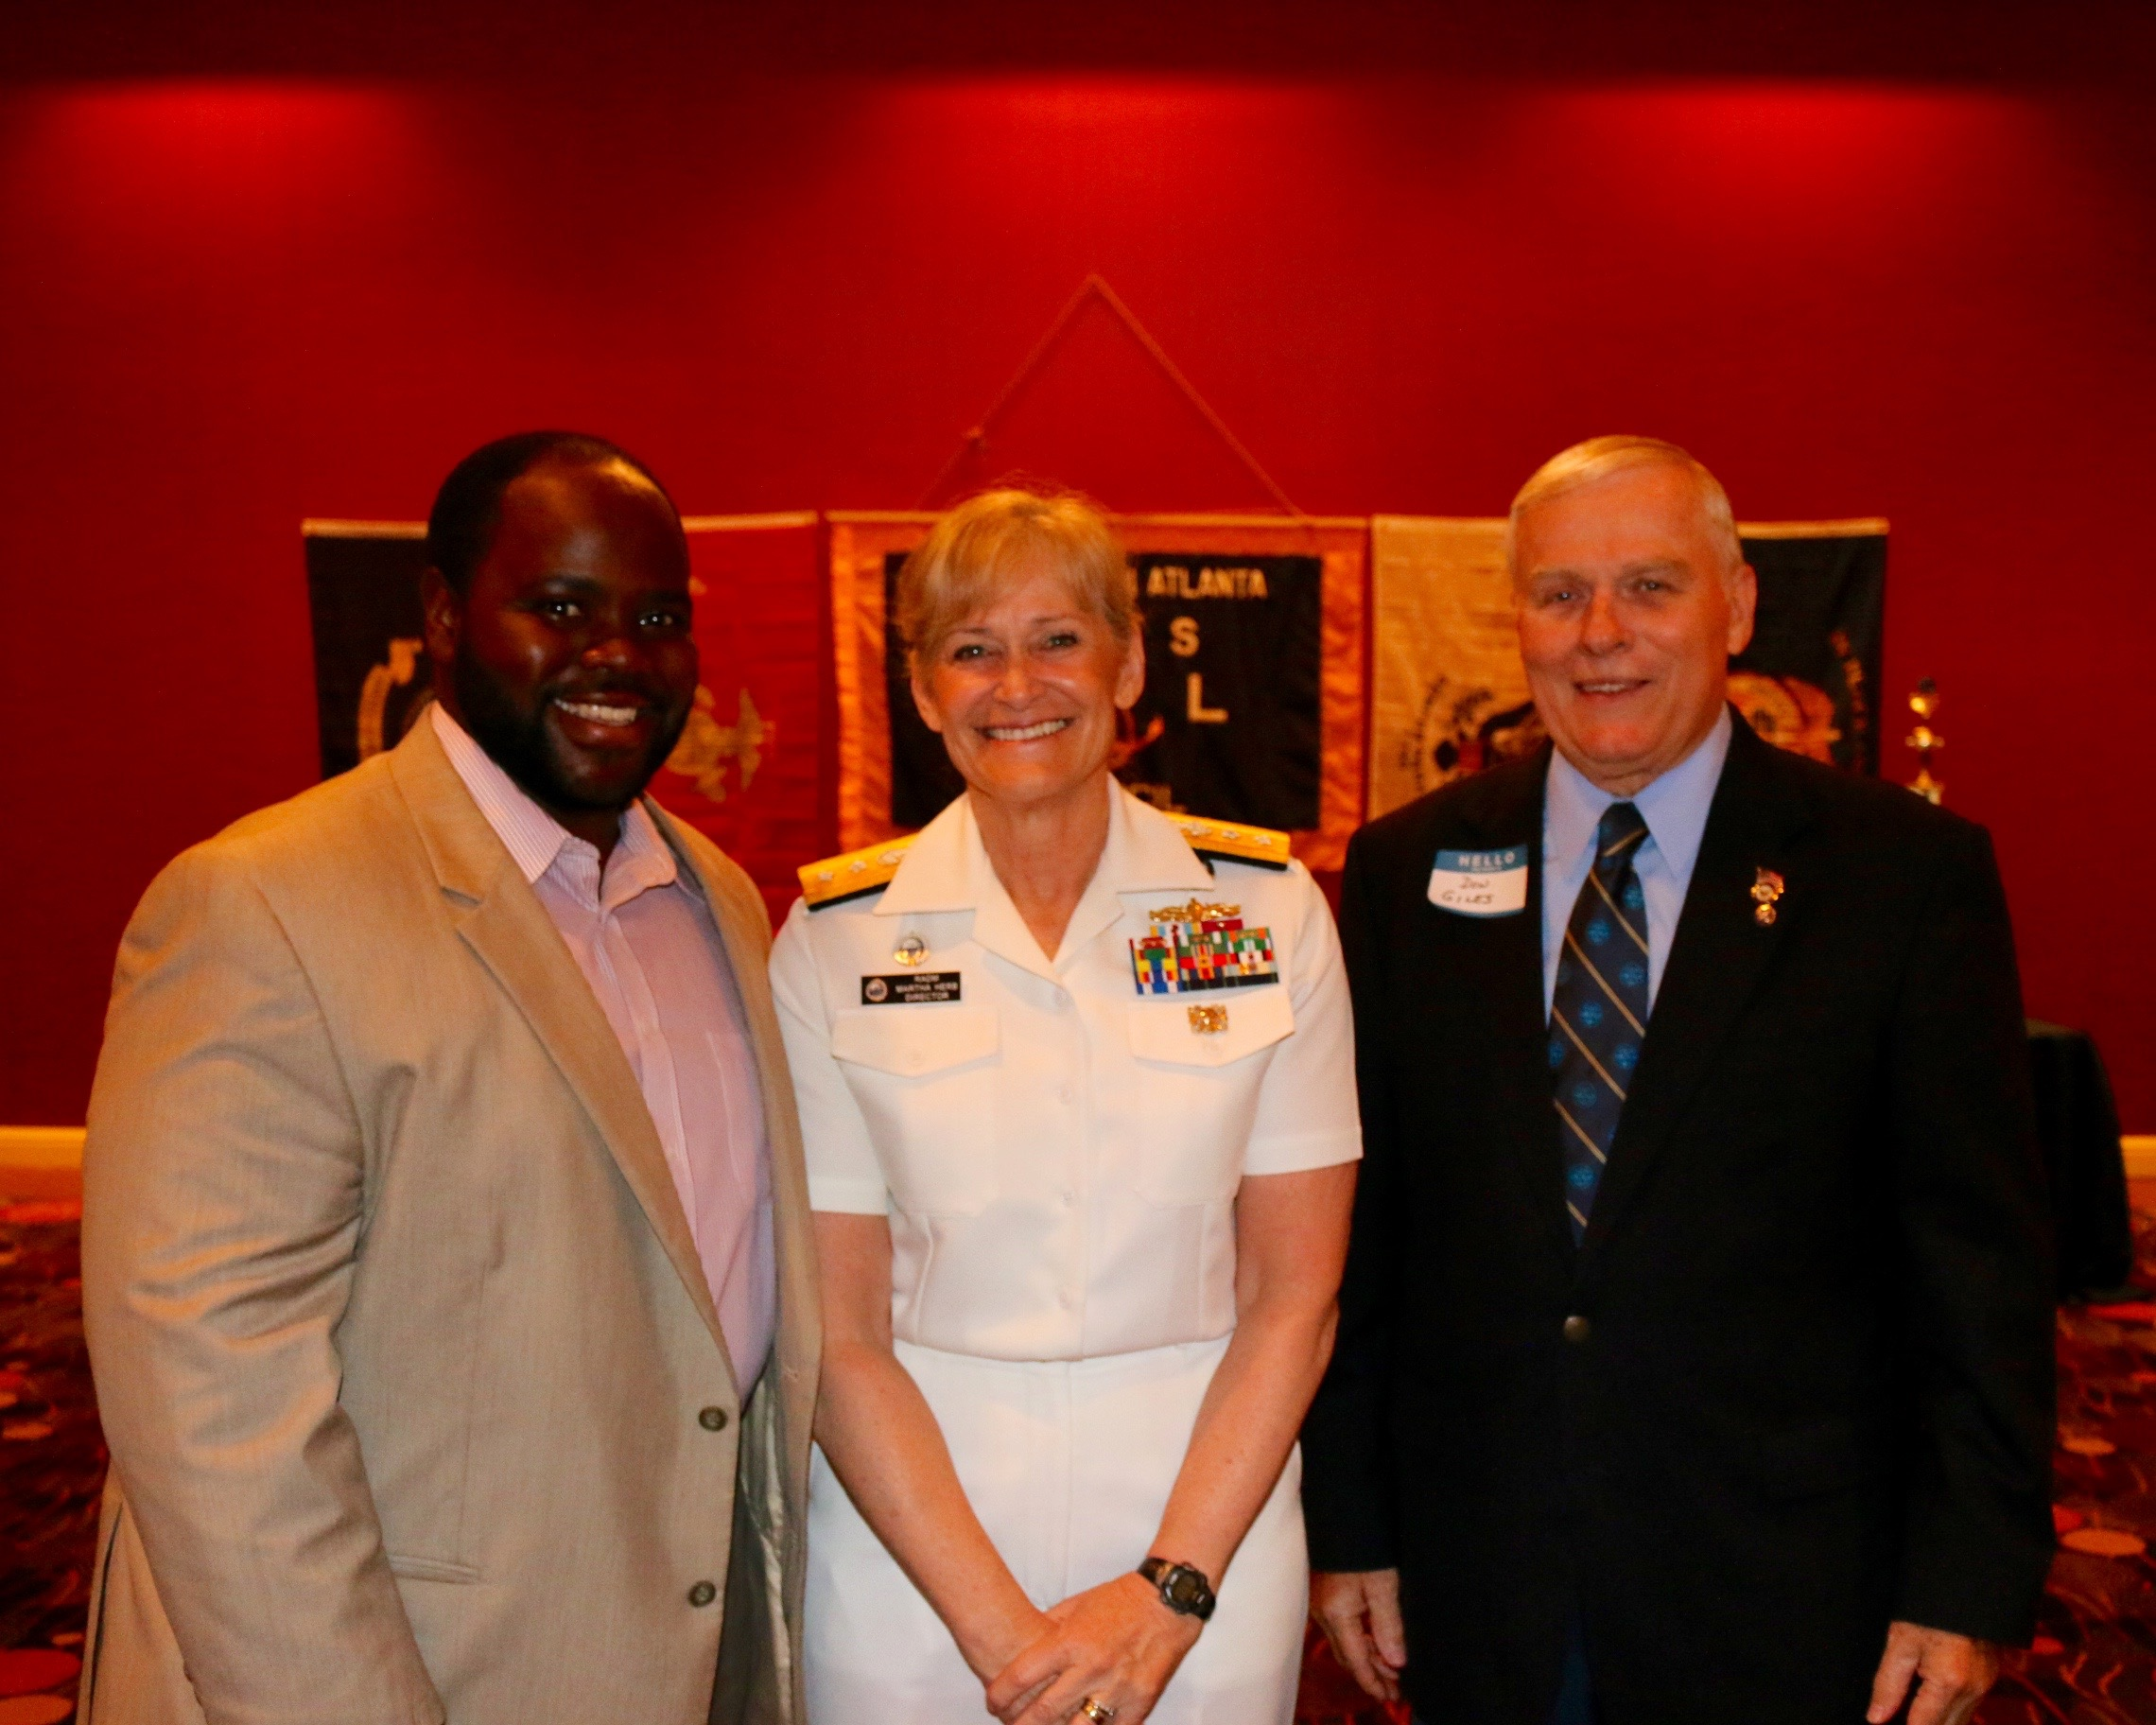 SPECIAL GUEST SINGER TENOR TIMONTHY MILLER, KEYNOTE SPEAKER RADM MARTHA HERB, AND ATLANTA COUNCIL VP OF LEGISLATIVE AFFAIRS DON GILES AT THE COUNCIL'S ANNUAL YOUTH AWARD BANQUET.